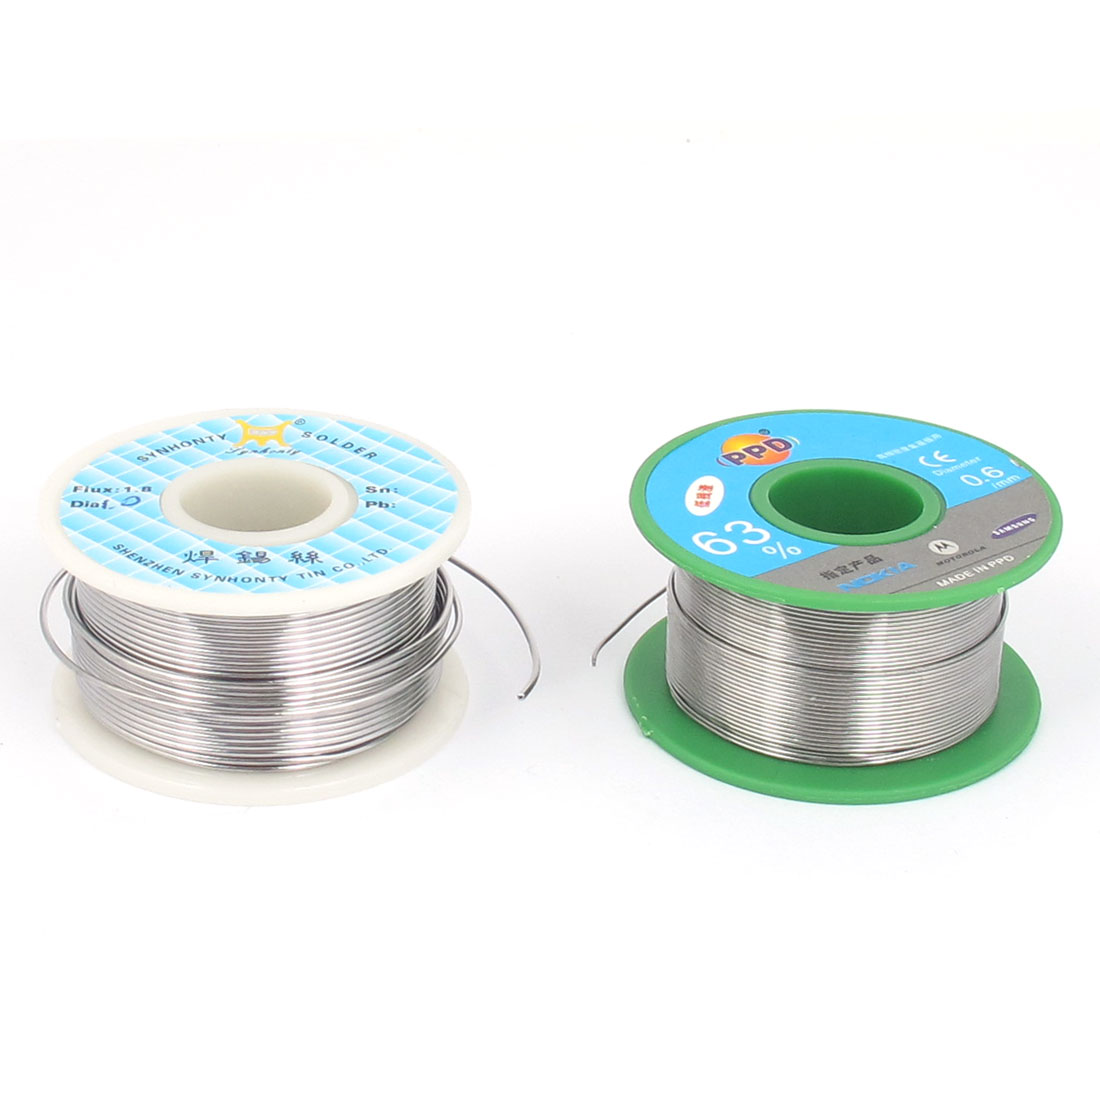 2 Pcs 1mm 0.6mm Diameter 63/37 Rosin Core Flux Tin Lead Roll Soldering Solder Wire Reel Spool